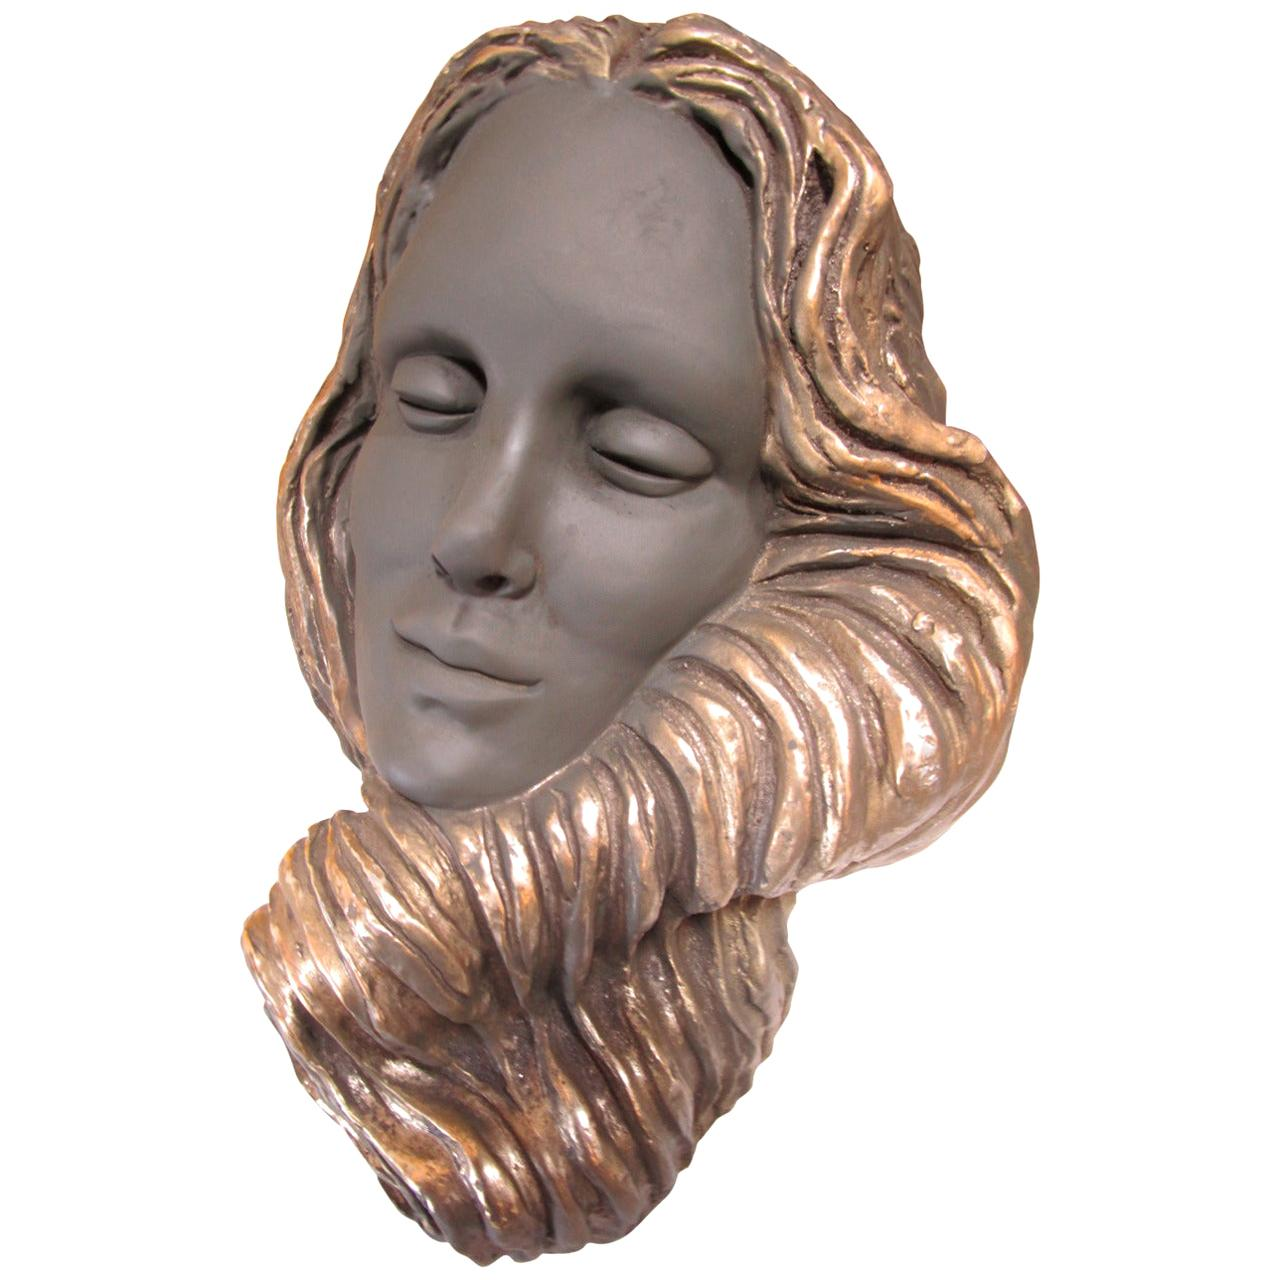 Enigmatic Sculpture of a Mermaid Face